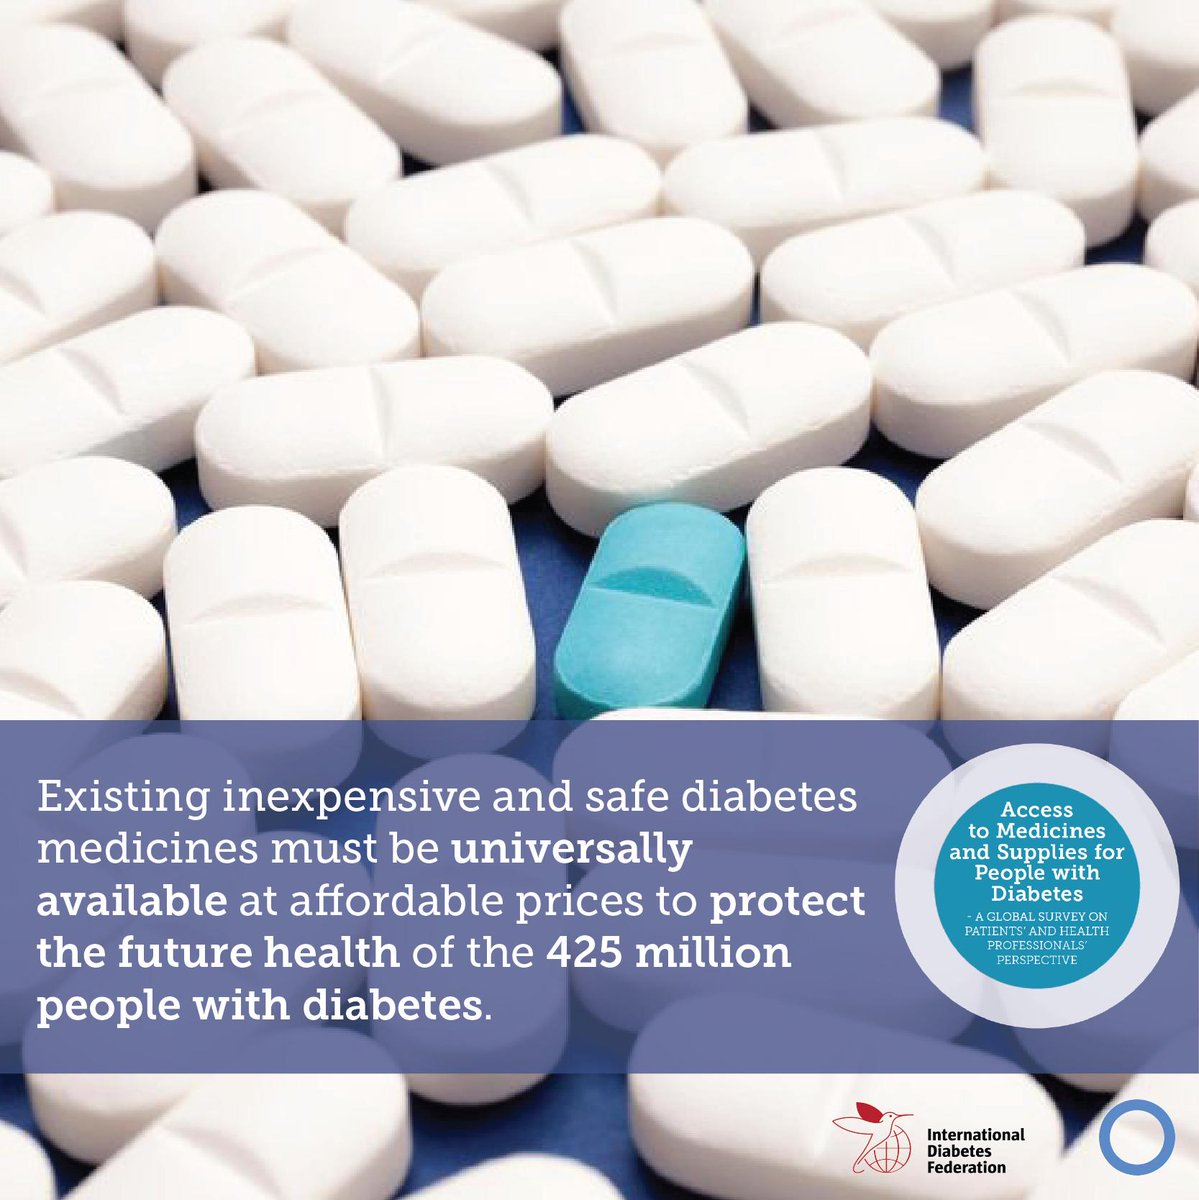 test Twitter Media - Essential #diabetes medicines such as metformin are unavailable in many low-income countries. Facilitating access to these medicines is essential to improve the health and wellbeing of people affected https://t.co/QELEygiOaf https://t.co/K47jkblkJE